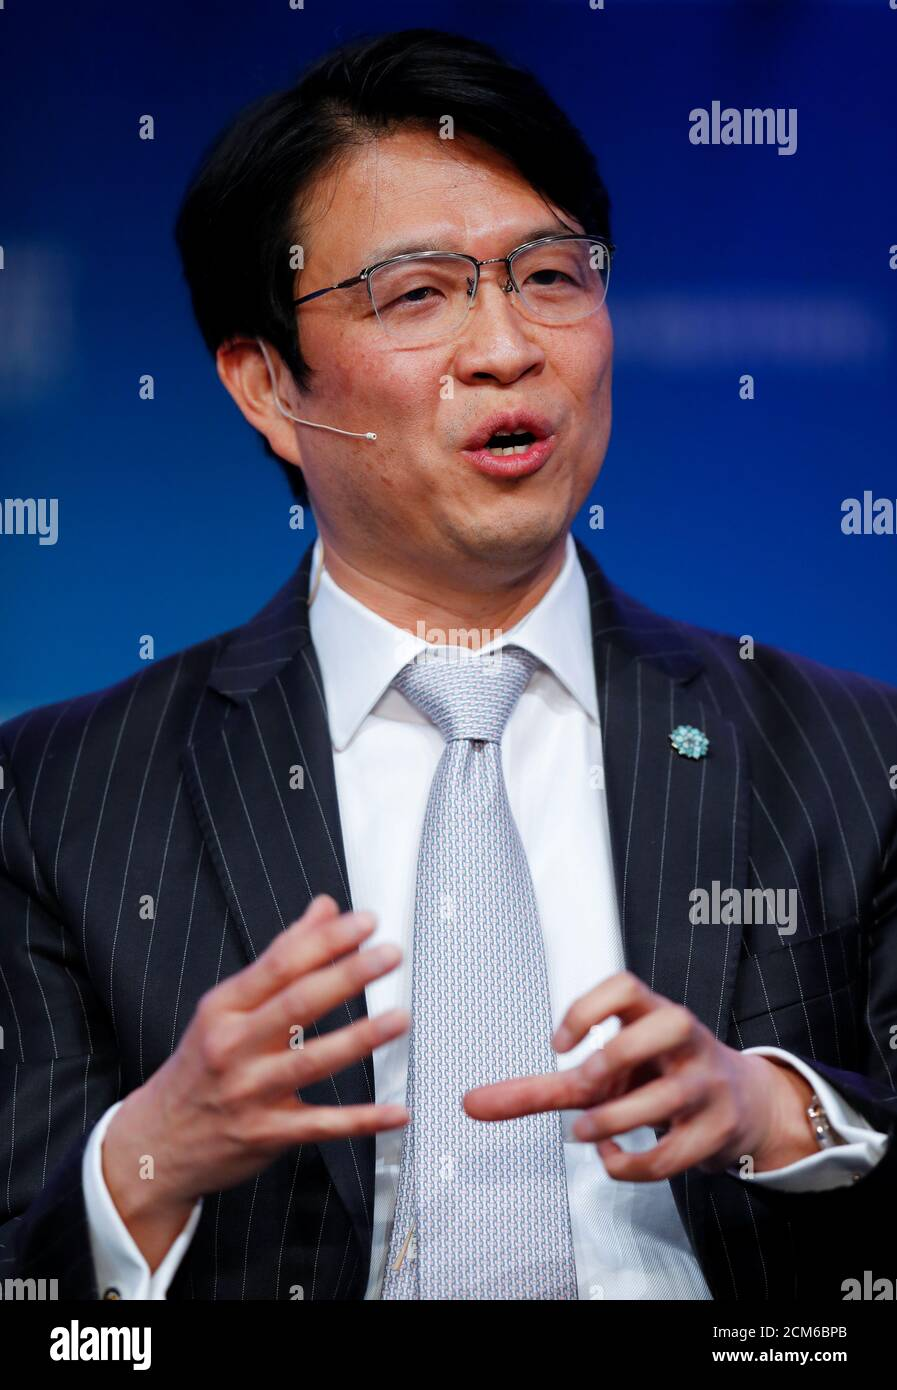 Hiromichi Mizuno Executive Managing Director and Chief Investment Officer at Government Pension Investment Fund in Japan and Co-Chair at Global Capital Markets Advisory Council for Milken Institute, speaks during the Milken Institute's 22nd annual Global Conference in Beverly Hills, California, U.S., May 1, 2019.  REUTERS/Mike Blake Stock Photo